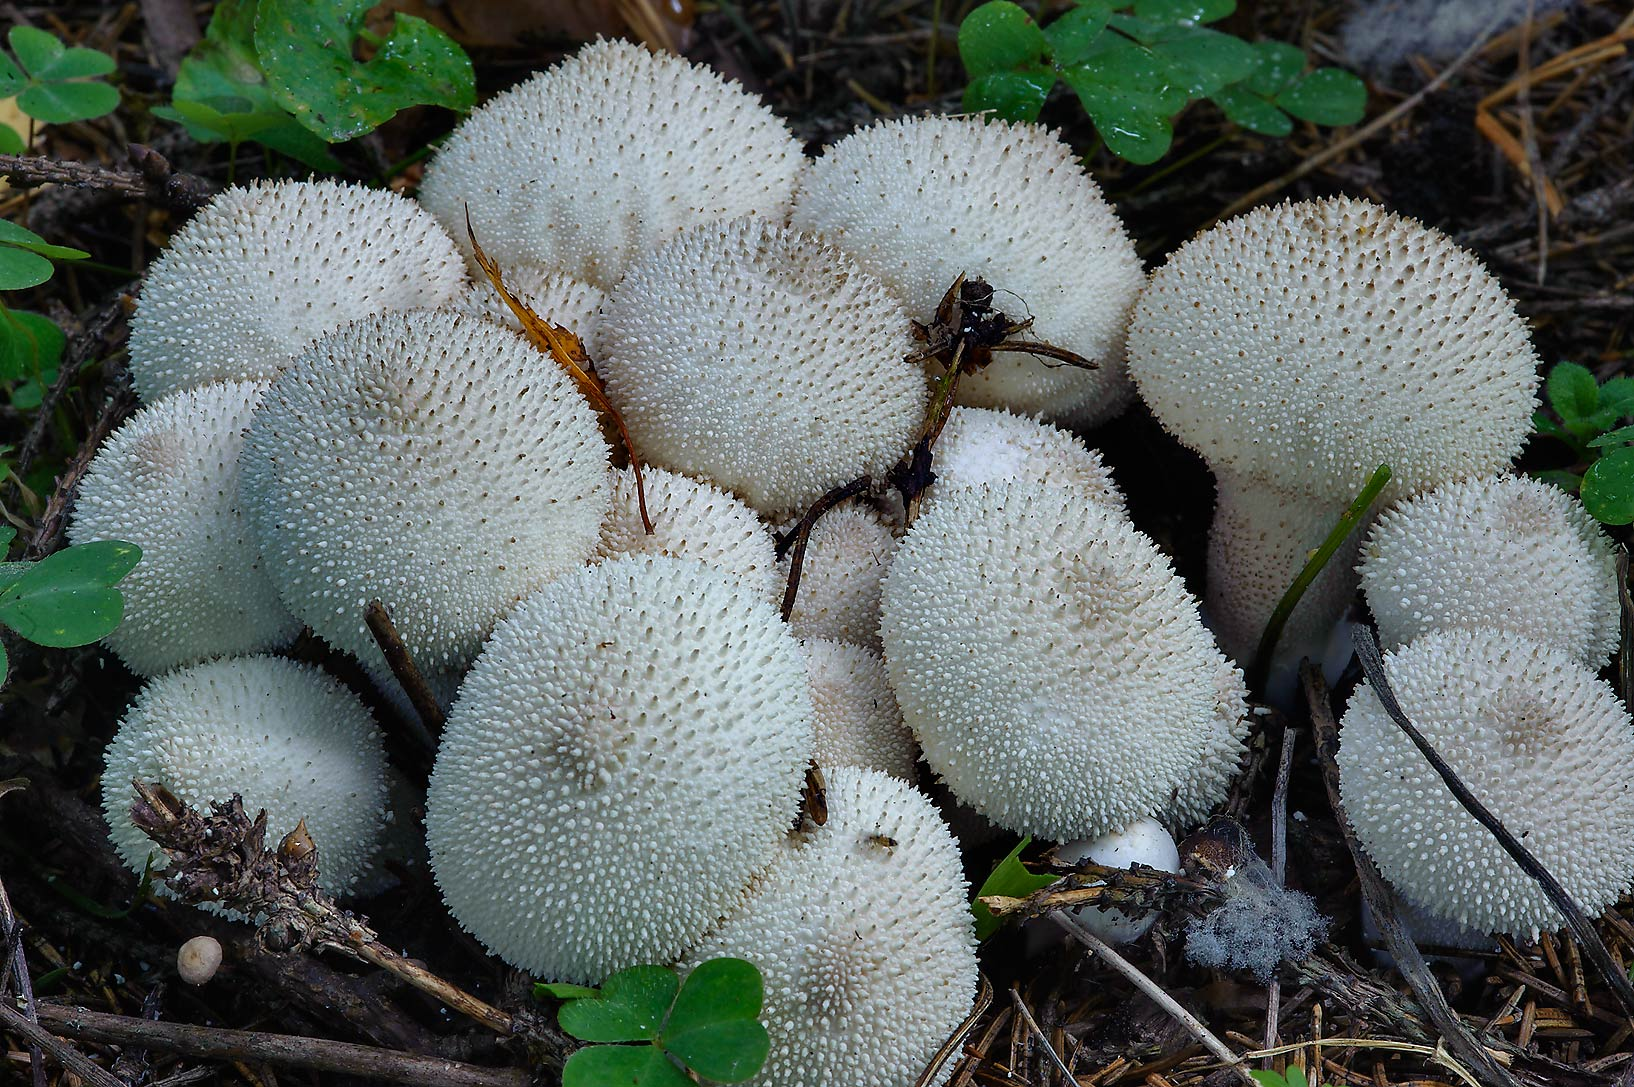 Spiked puffball mushrooms (Lycoperdon perlatum...miles north from St.Petersburg. Russia